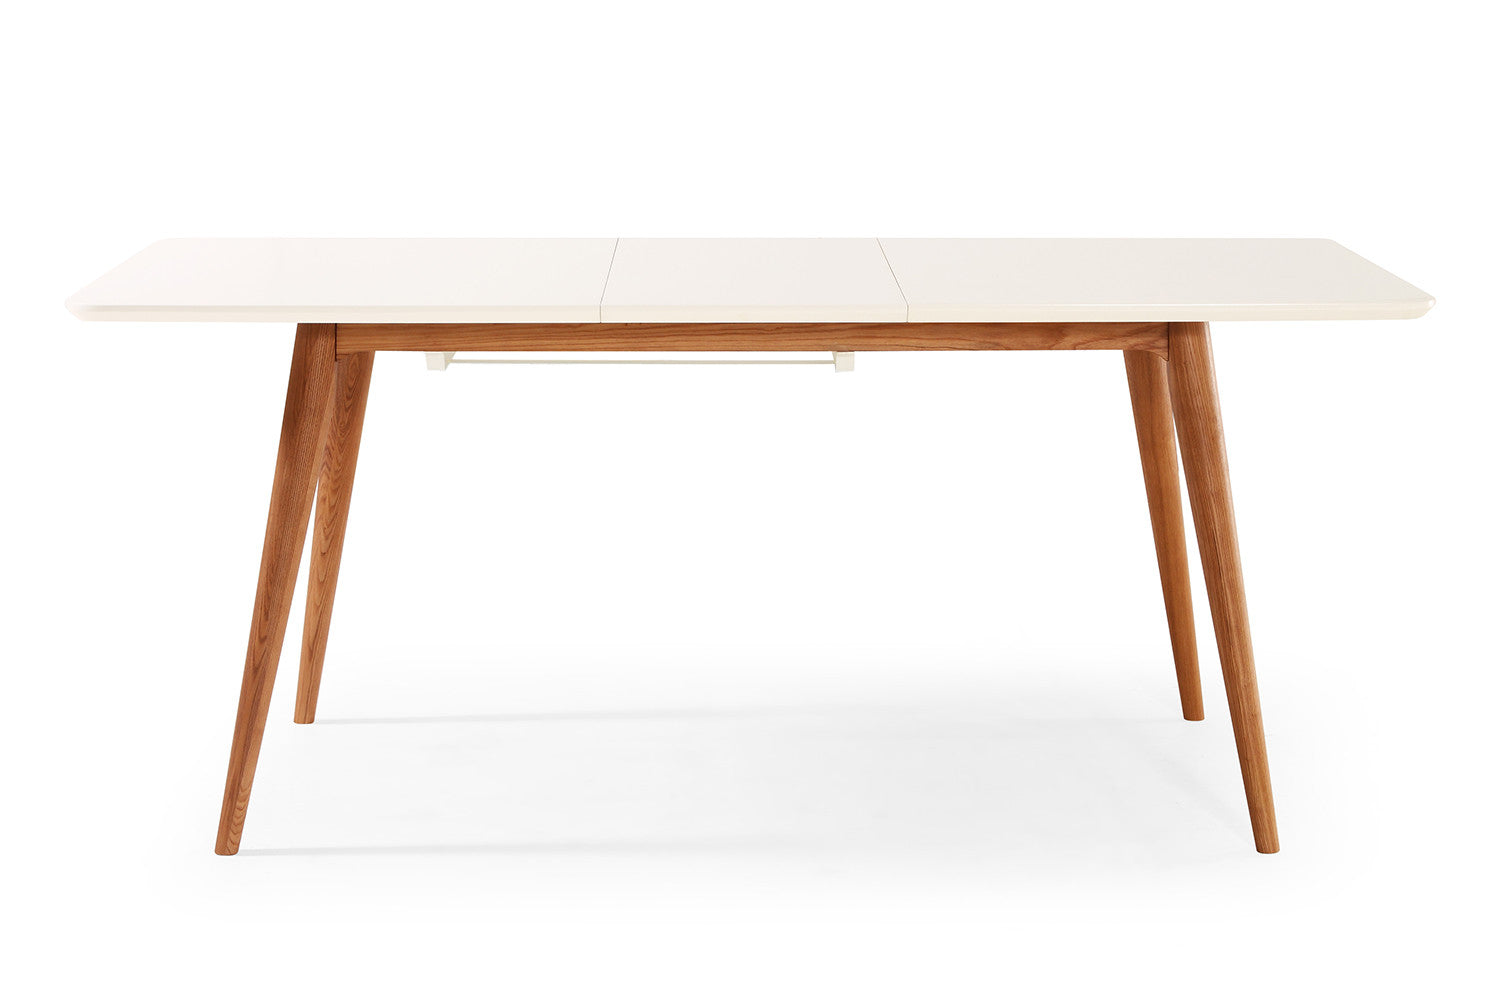 Table de salle manger extensible scandinave wyna dewarens for Table rallonge scandinave